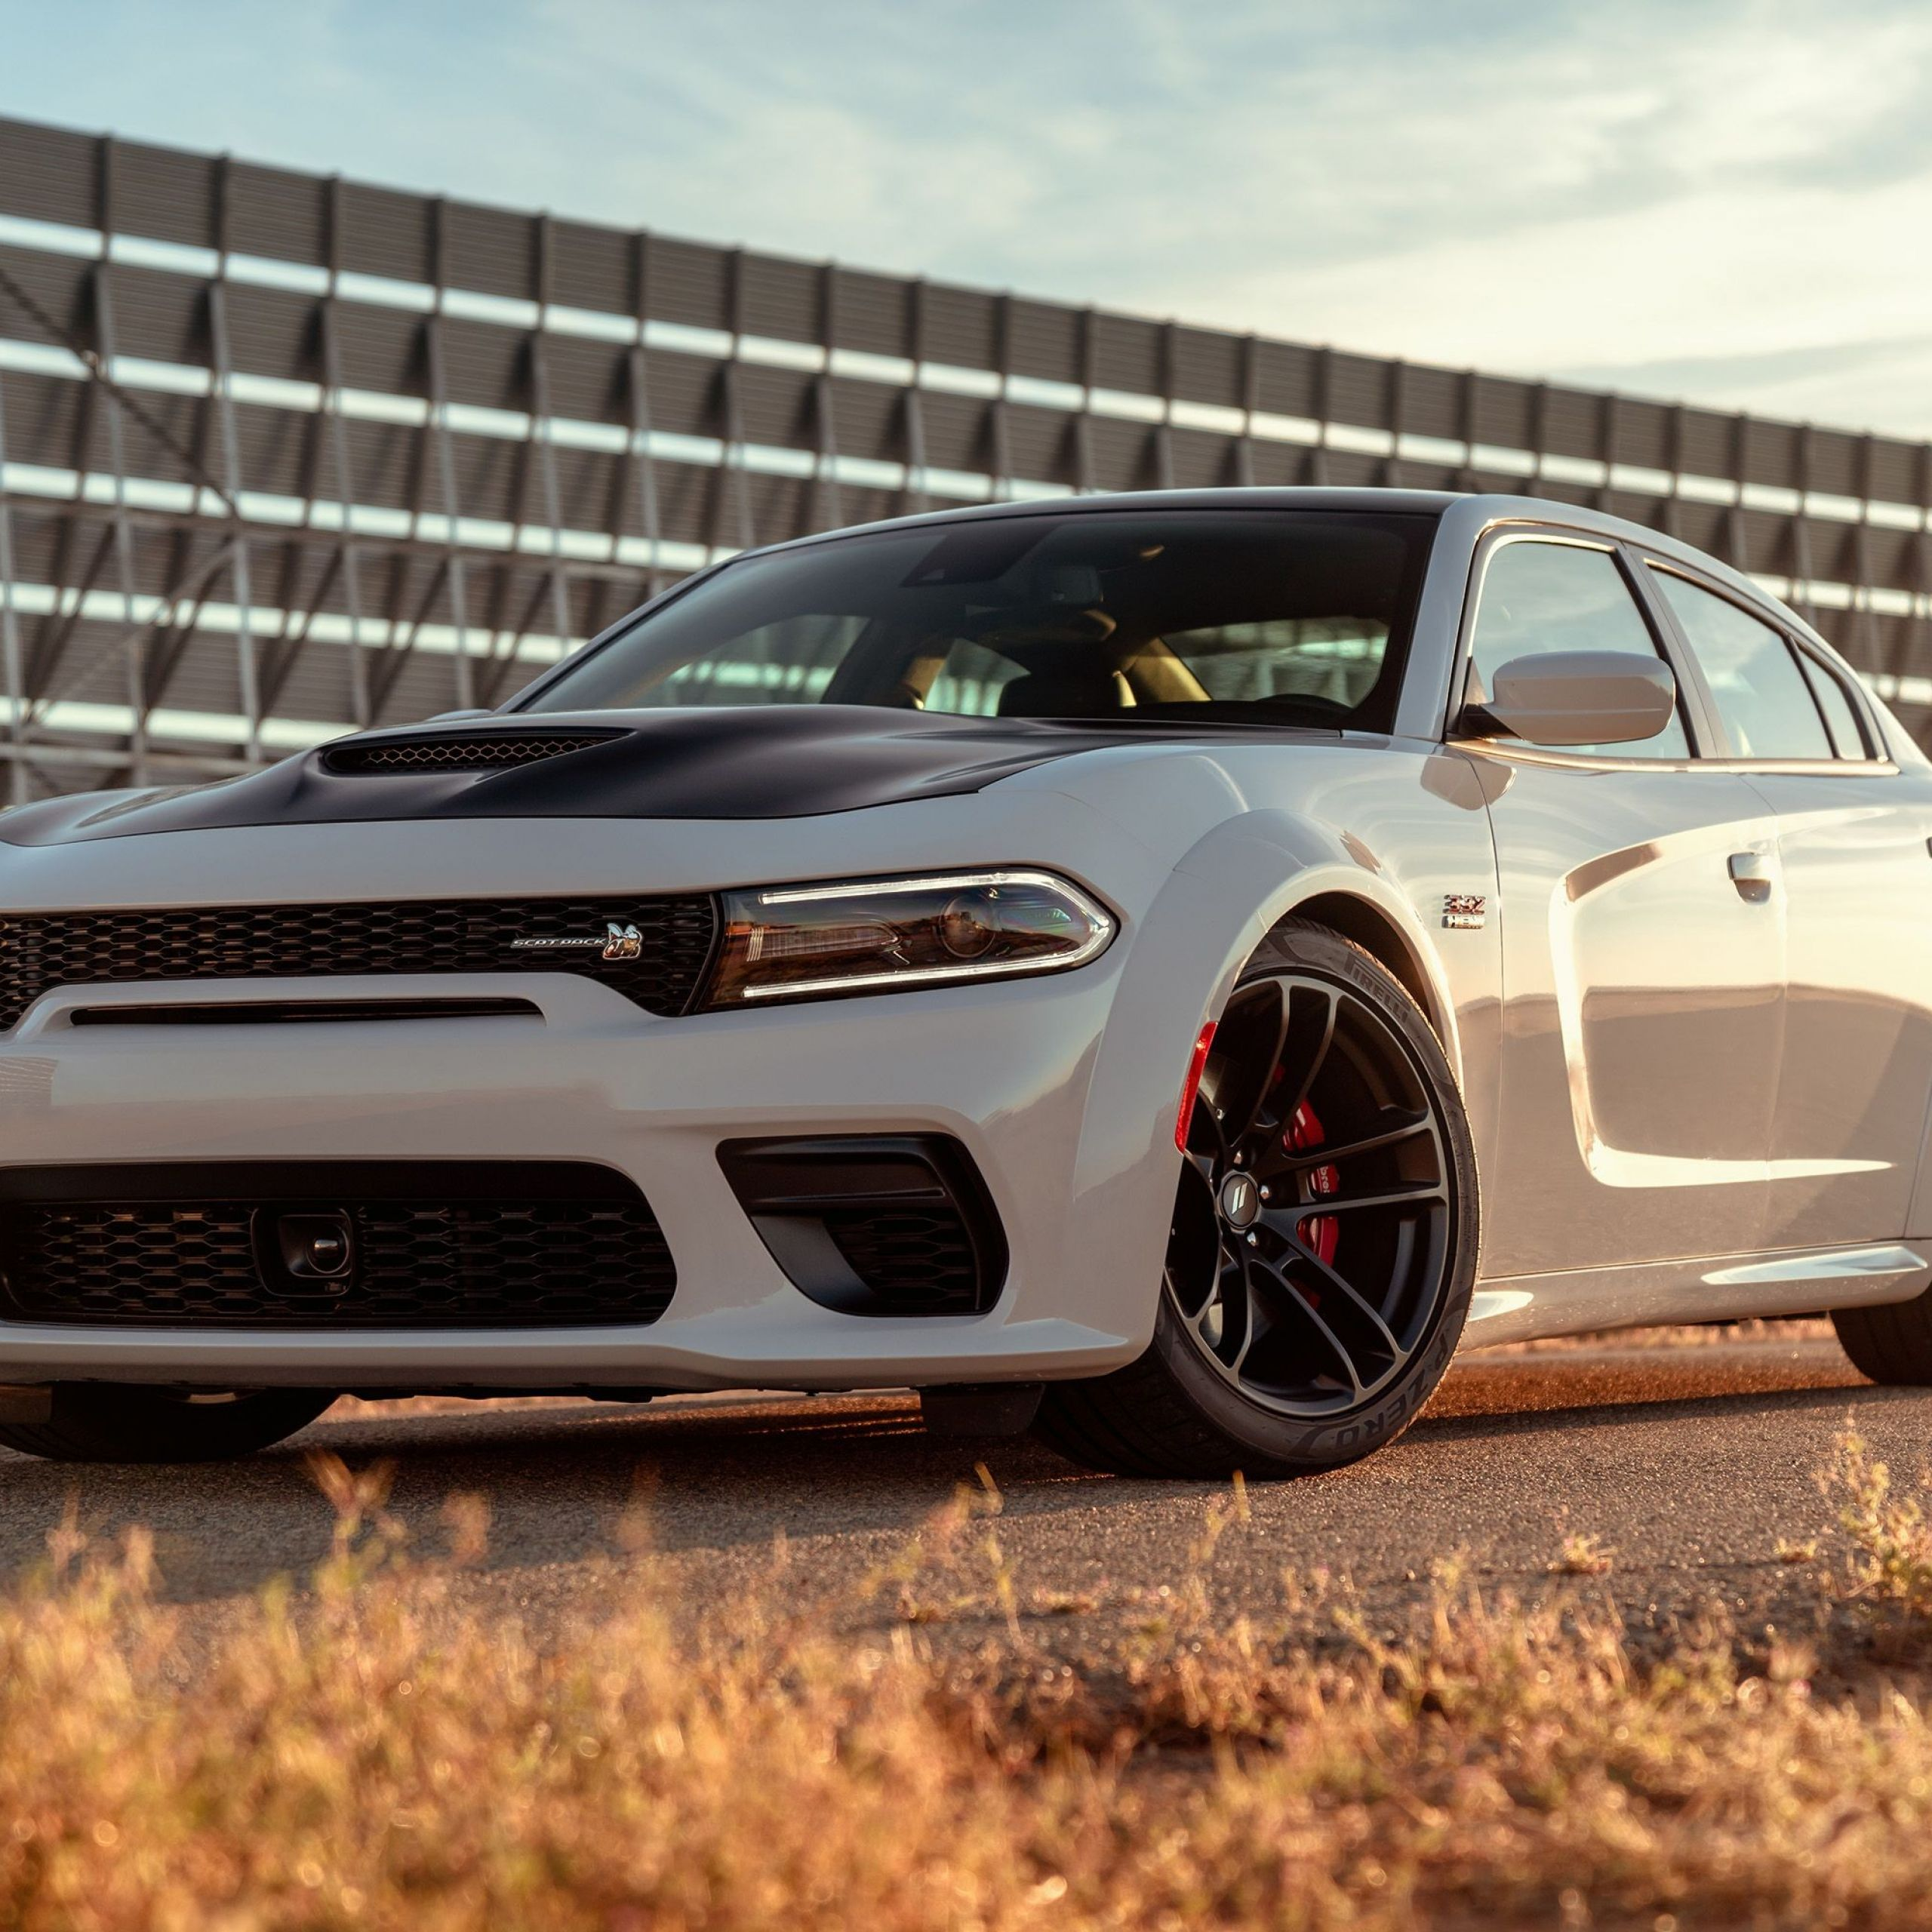 2010 Dodge Charger Elegant 2020 Dodge Charger Review Pricing and Specs